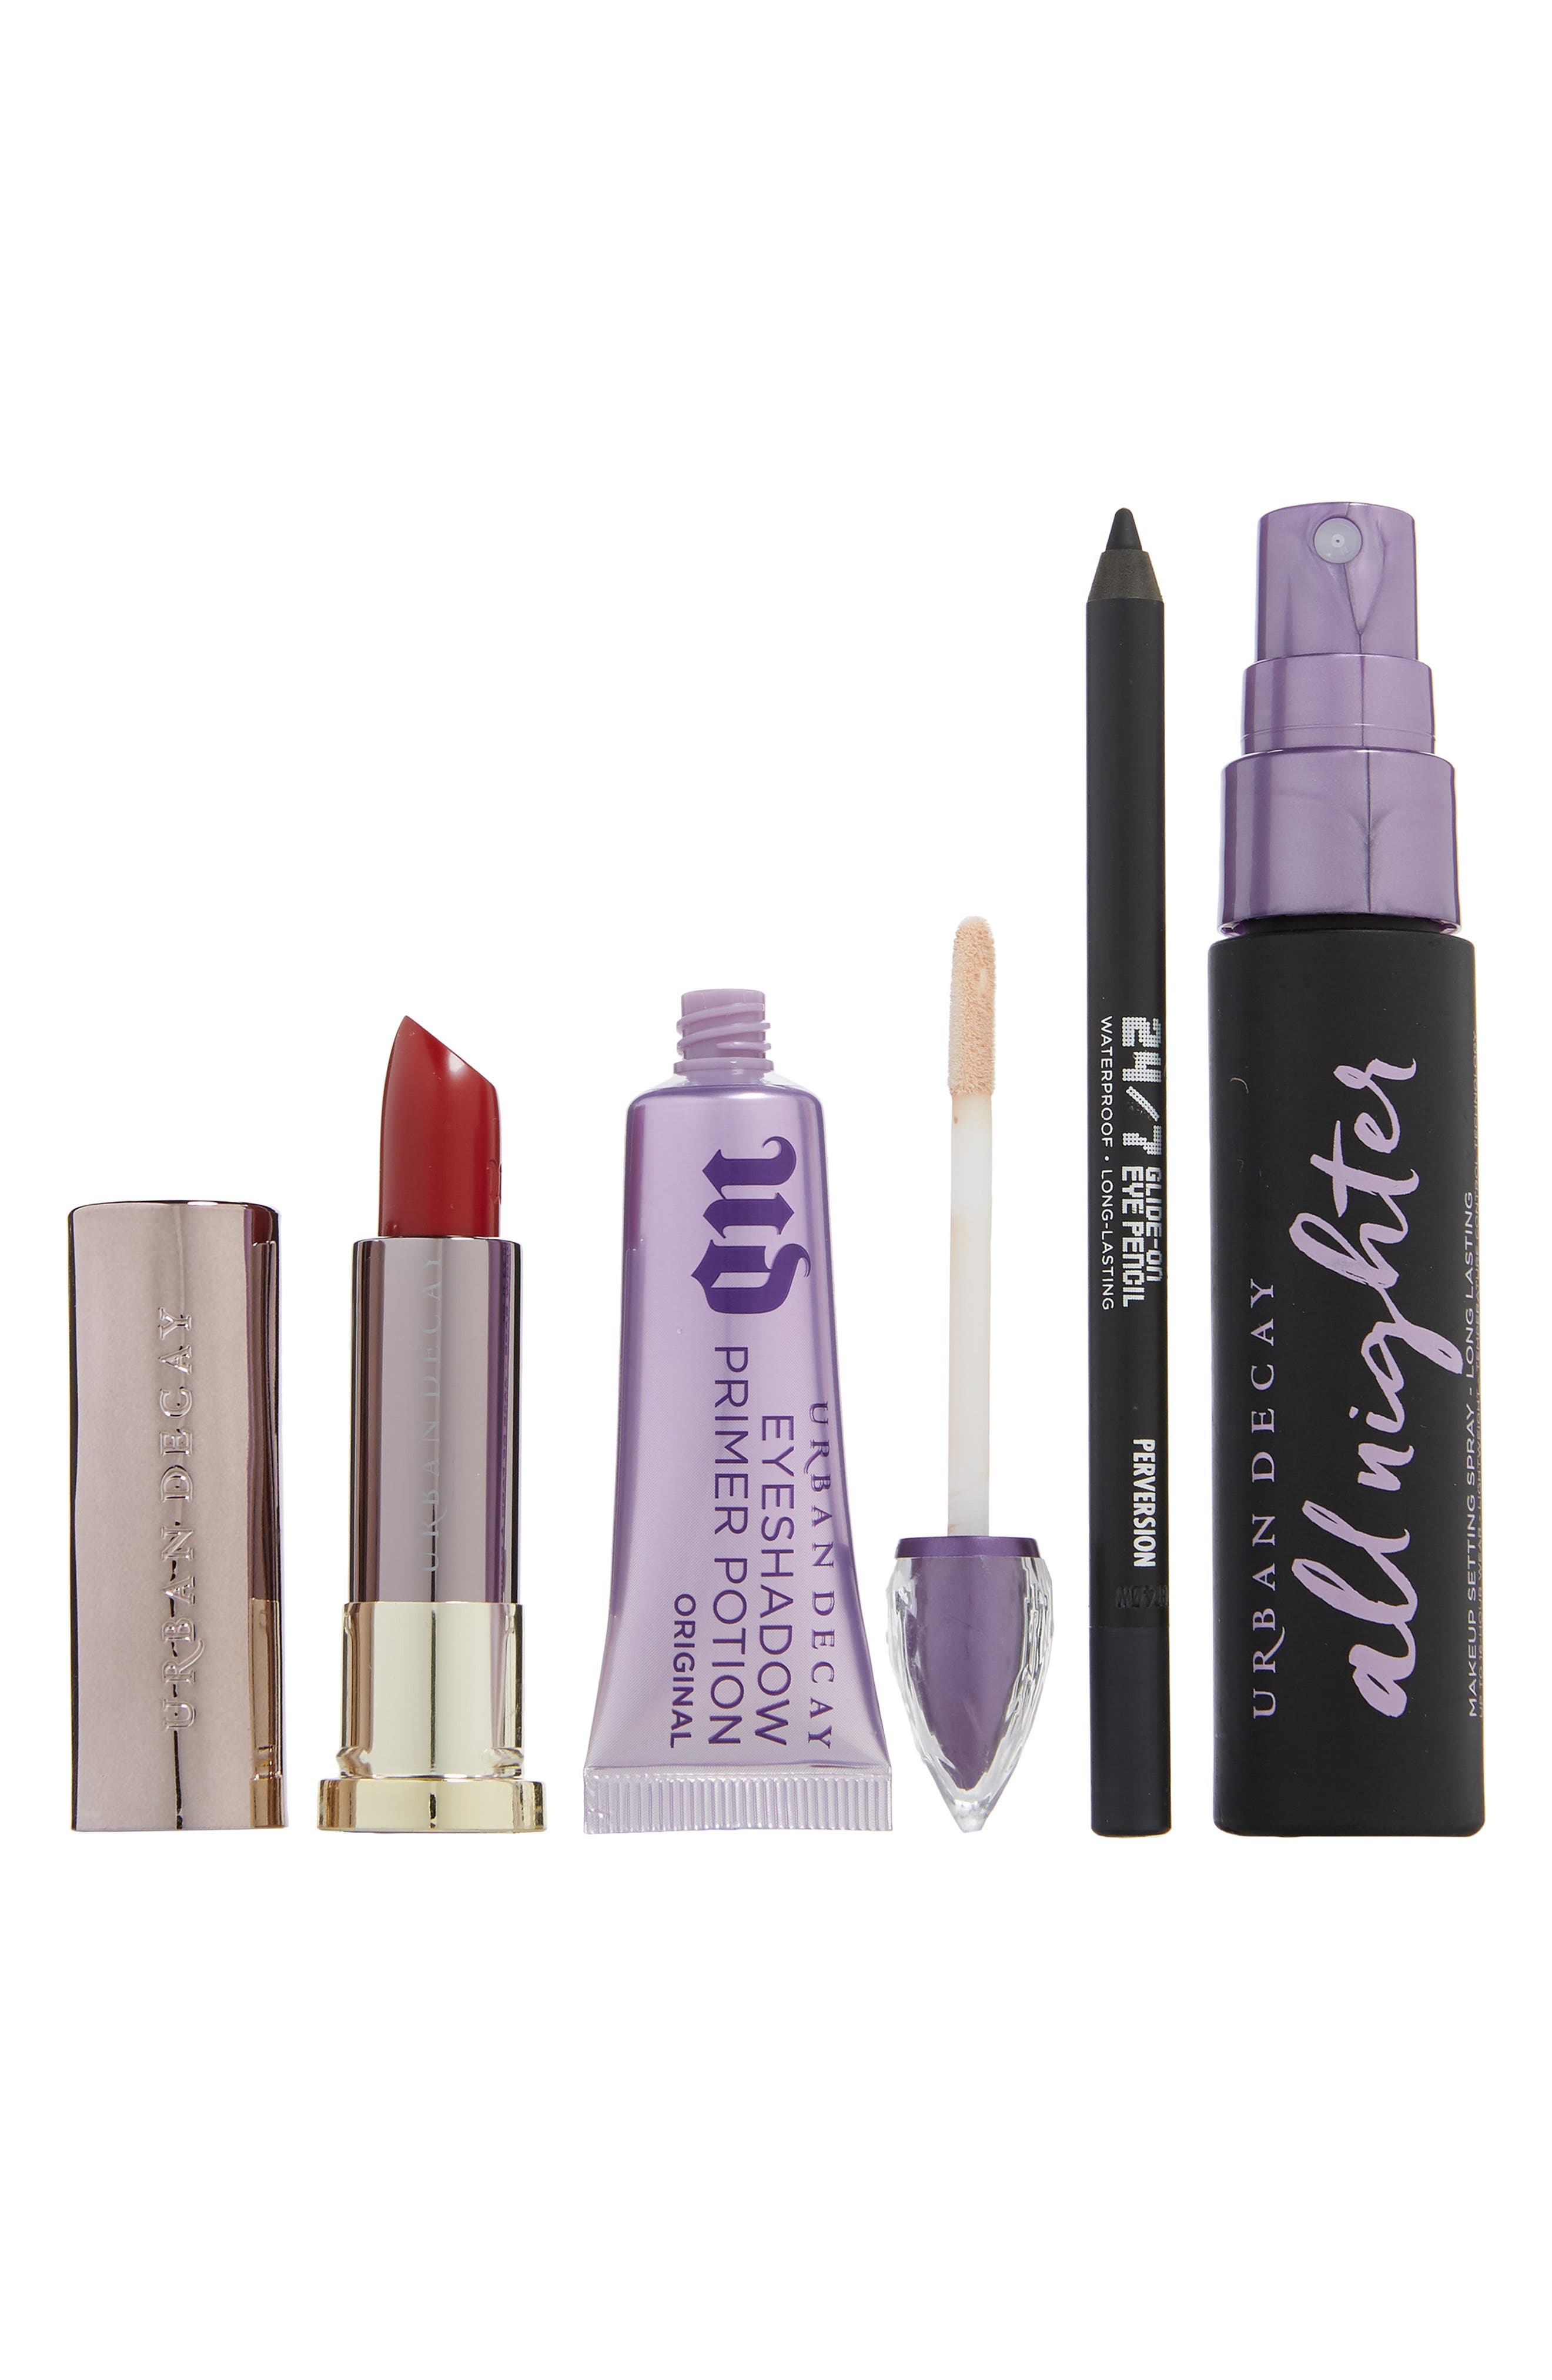 What it is: A limited-edition makeup kit filled with four Urban Decay fan favorites to help you create the perfect holiday makeup look. Set includes:- Full-size Original Eyeshadow Primer Potion (0.33 oz.): a vegan primer that preps your eyes with a creamy base for more vibrant, crease-free eye makeup looks that last all day- Full-size 24/7 Glide-On Eyeliner Pencil in Zero (0.04 oz.): a waterproof, long-lasting eyeliner pencil that glides on